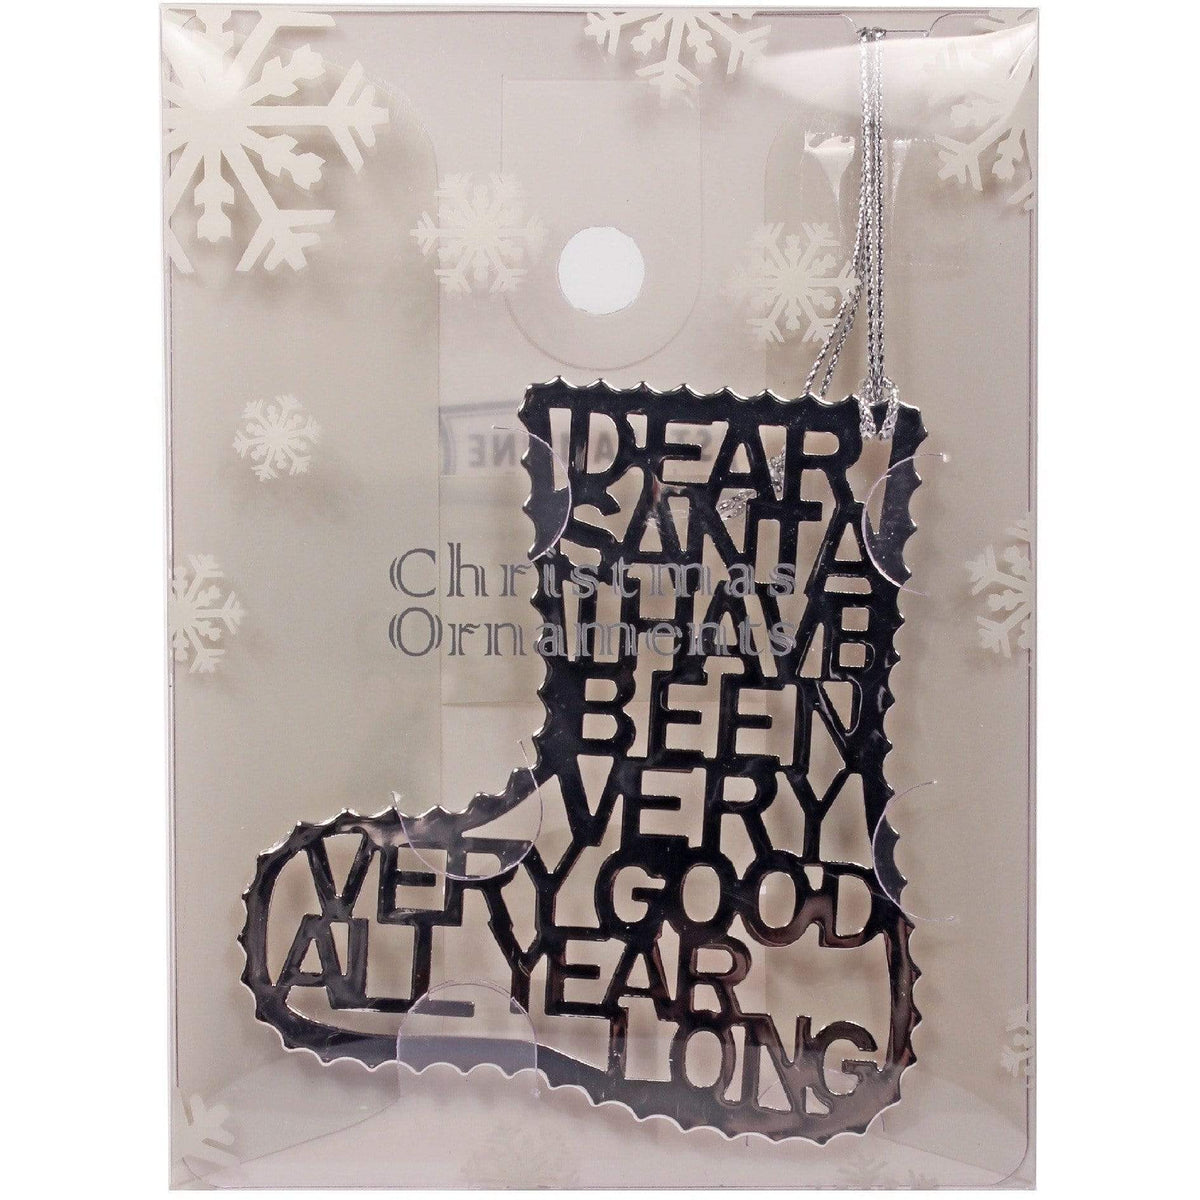 Dear Santa - Stocking Ornament